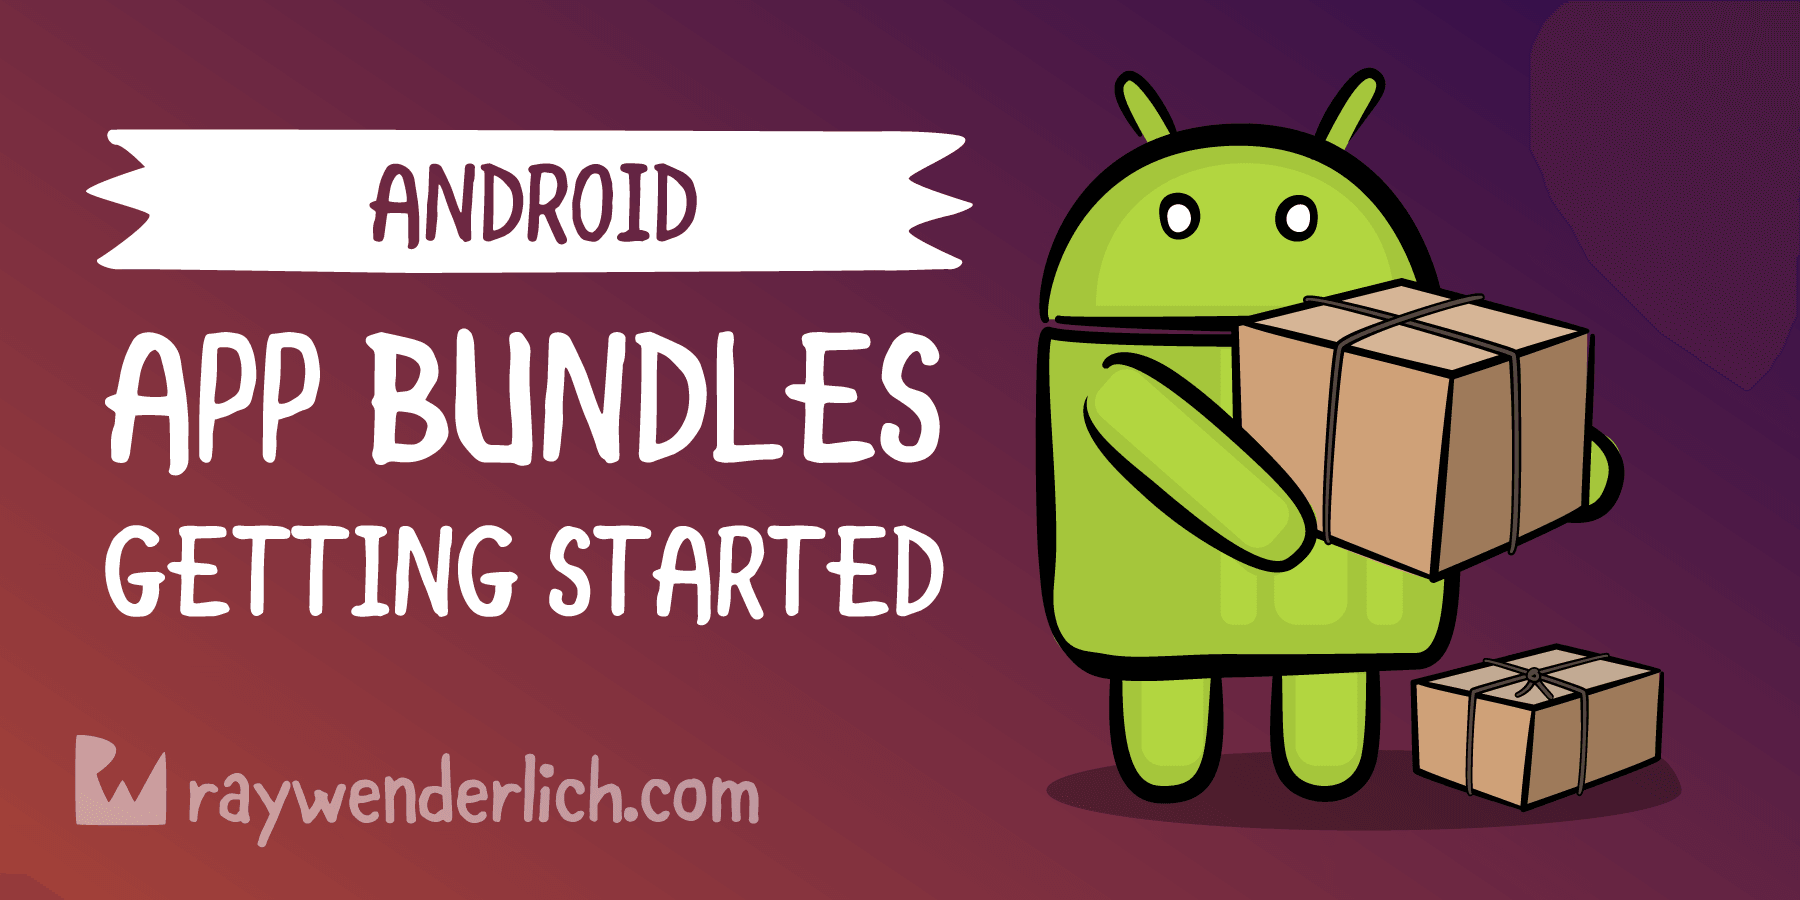 QnA VBage Android App Bundles: Getting Started [FREE]